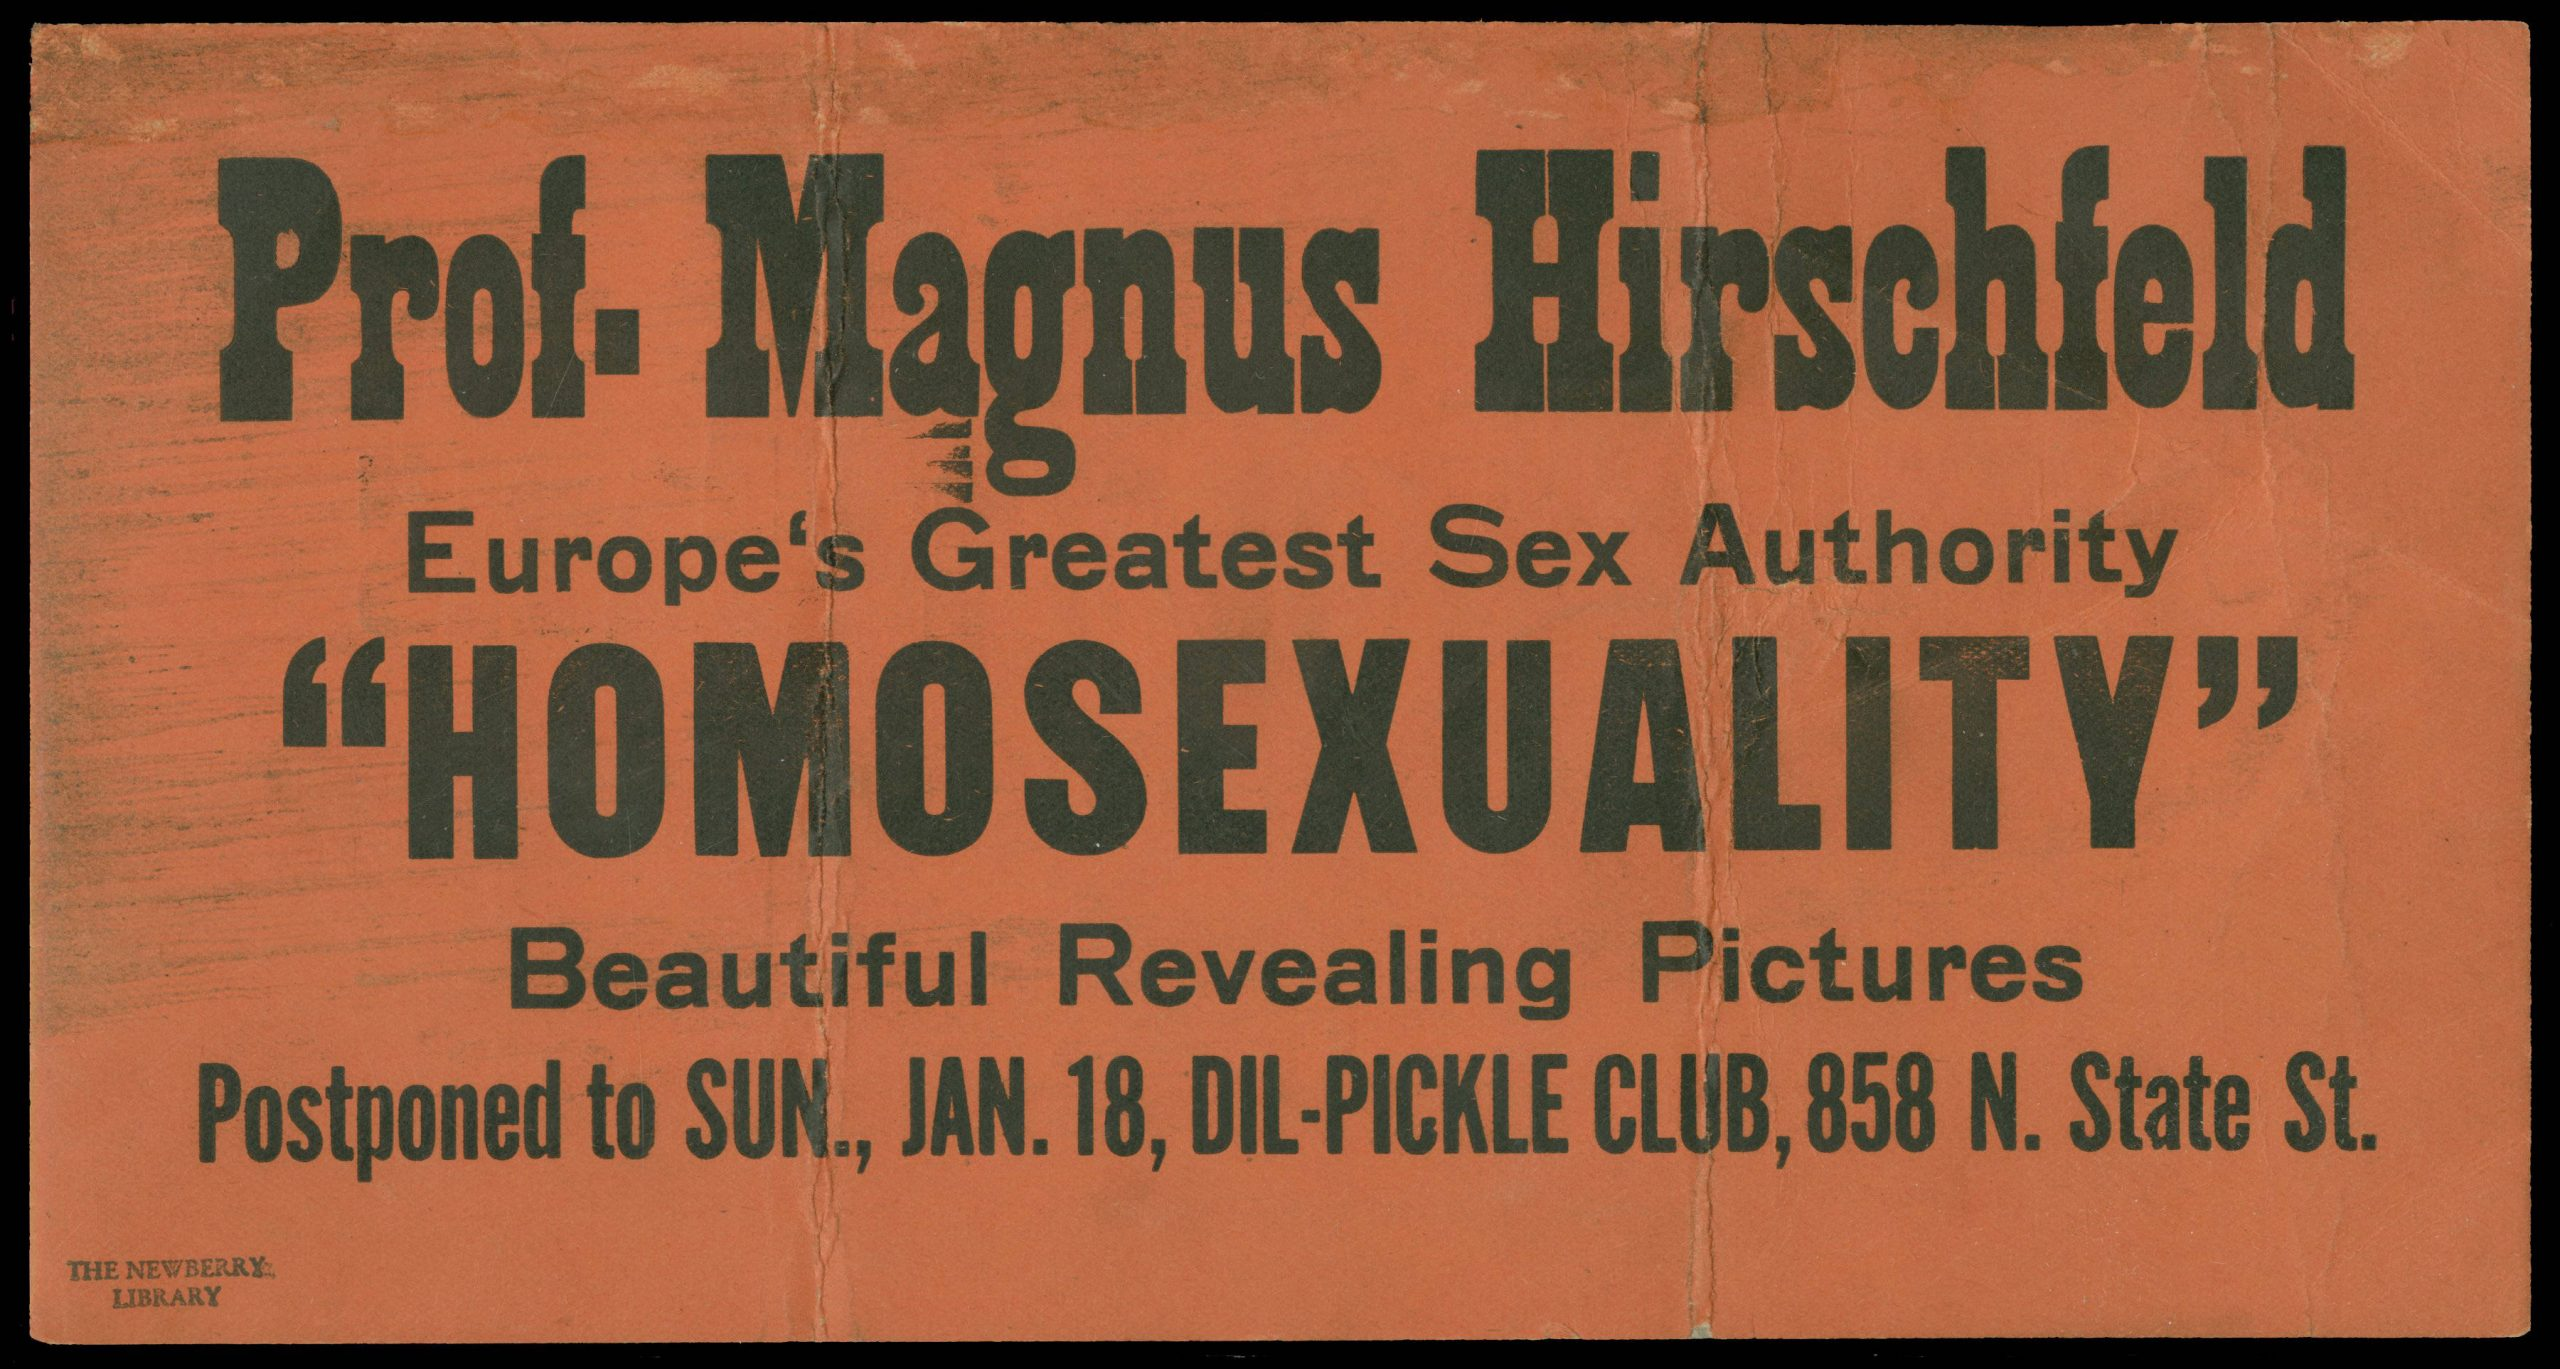 Dil Pickle Club Towertown Chicago gay neighborhood history